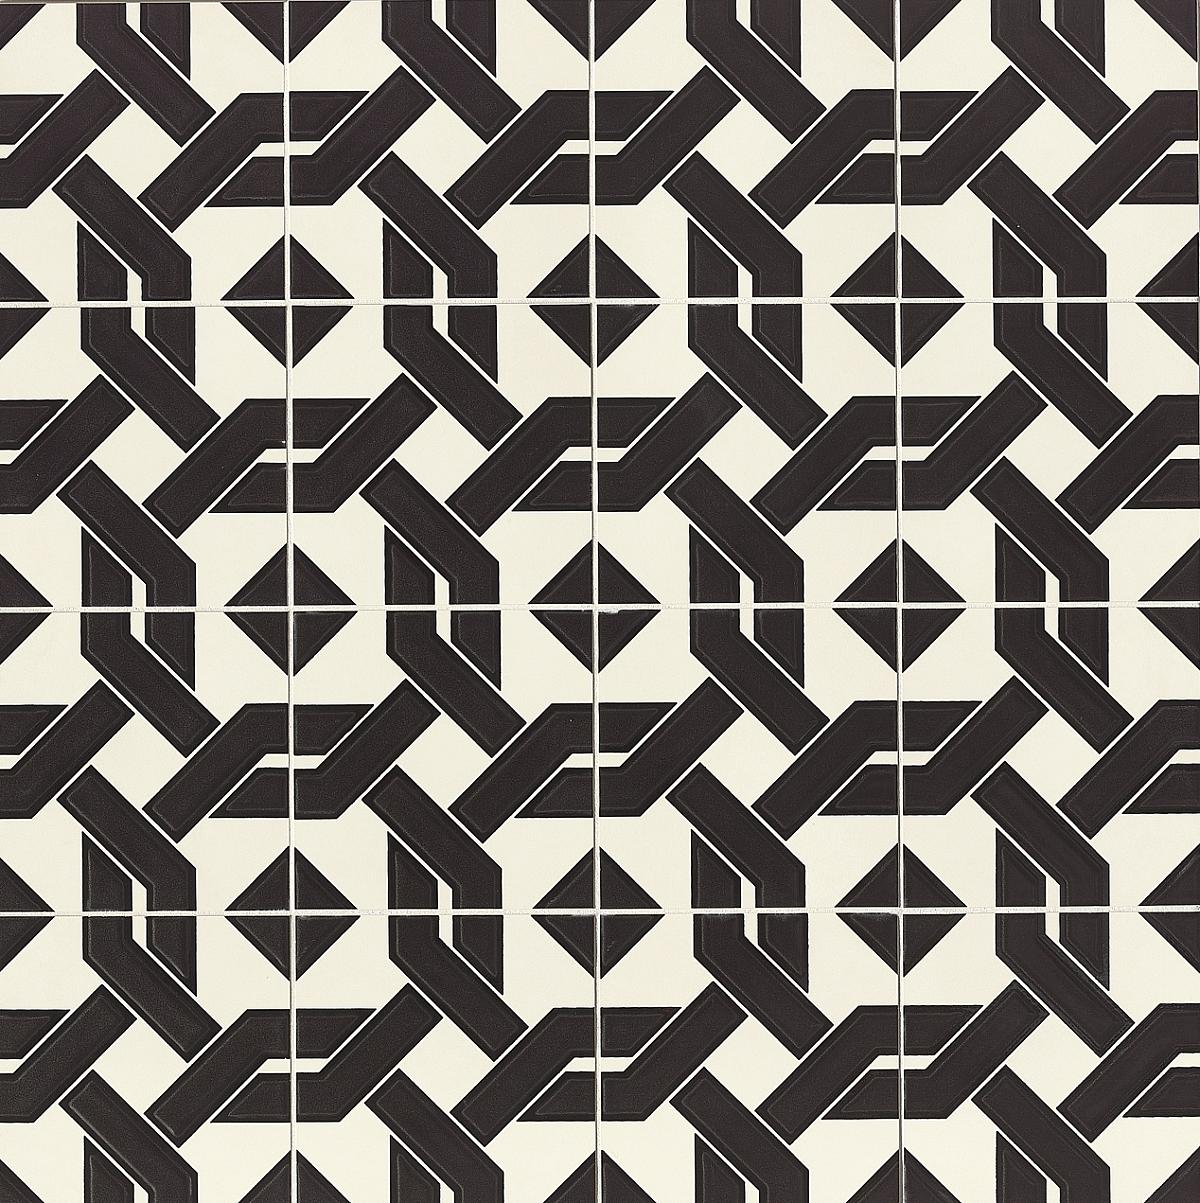 Black & white cement tile with interwoven pattern.